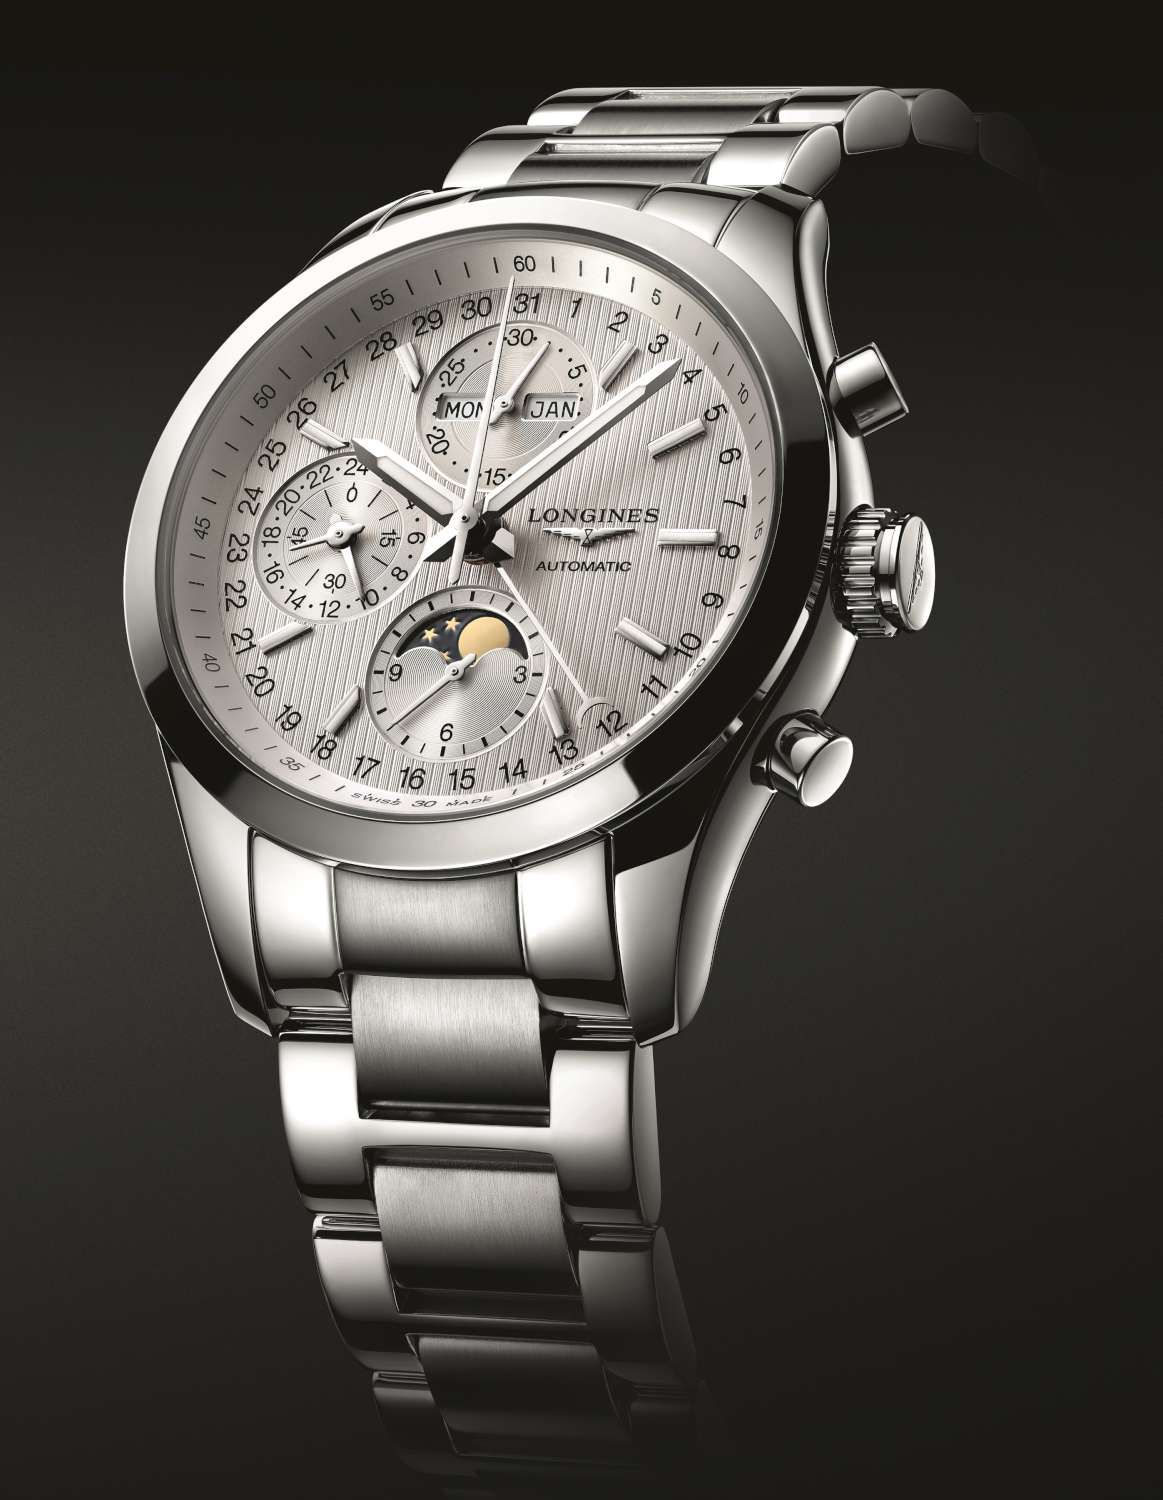 Longines Classic Moonphase, steel case and bracelet, L2.798.4.72.6, €2,700